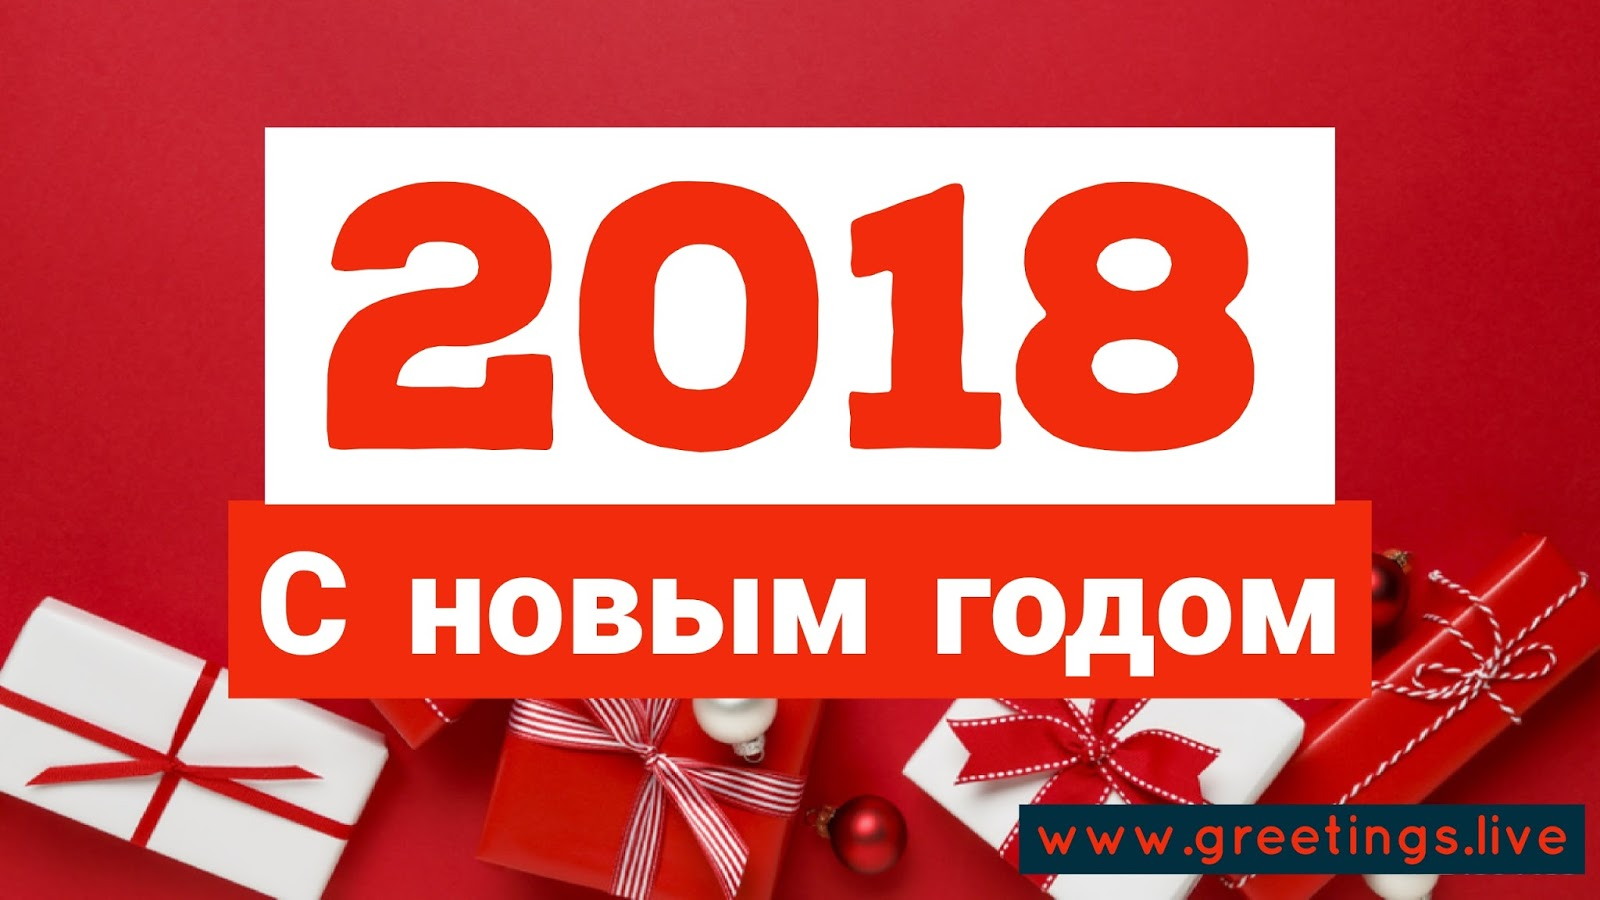 Greetingsve hd images love smile birthday wishes free download happy new year 2018 in russian language wishes kristyandbryce Image collections